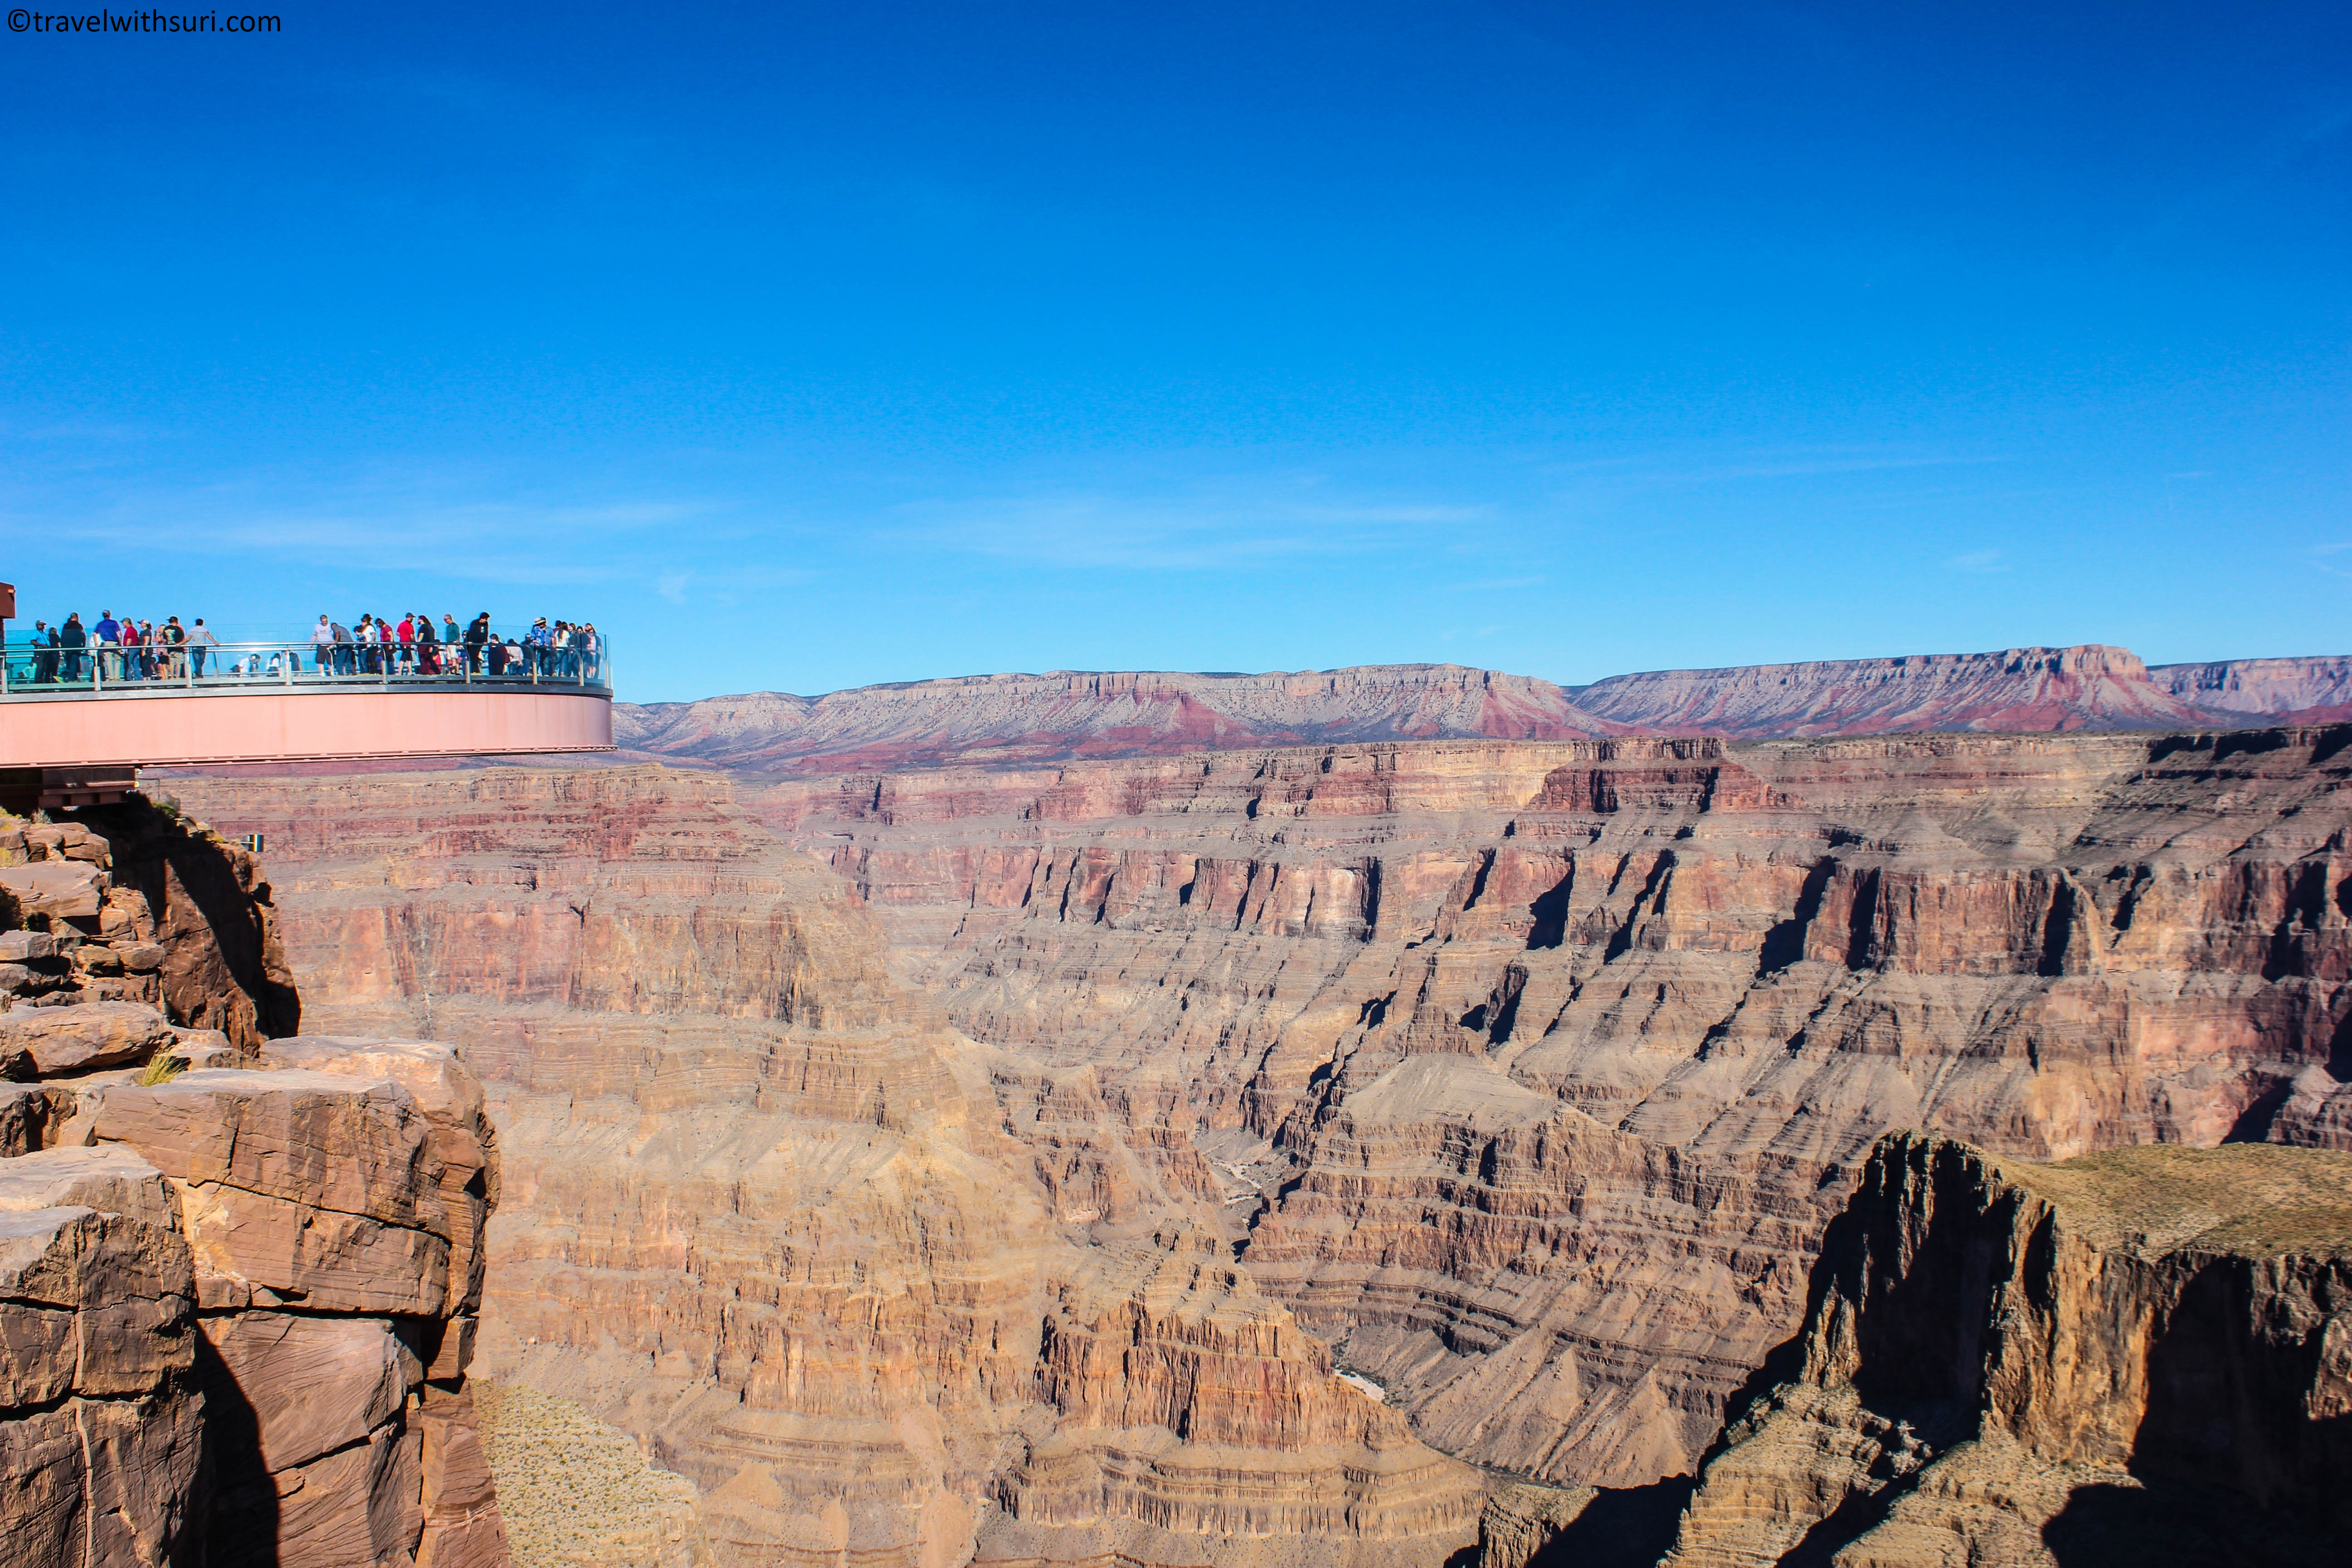 Grand Canyon Skywalk Travel With Suresh